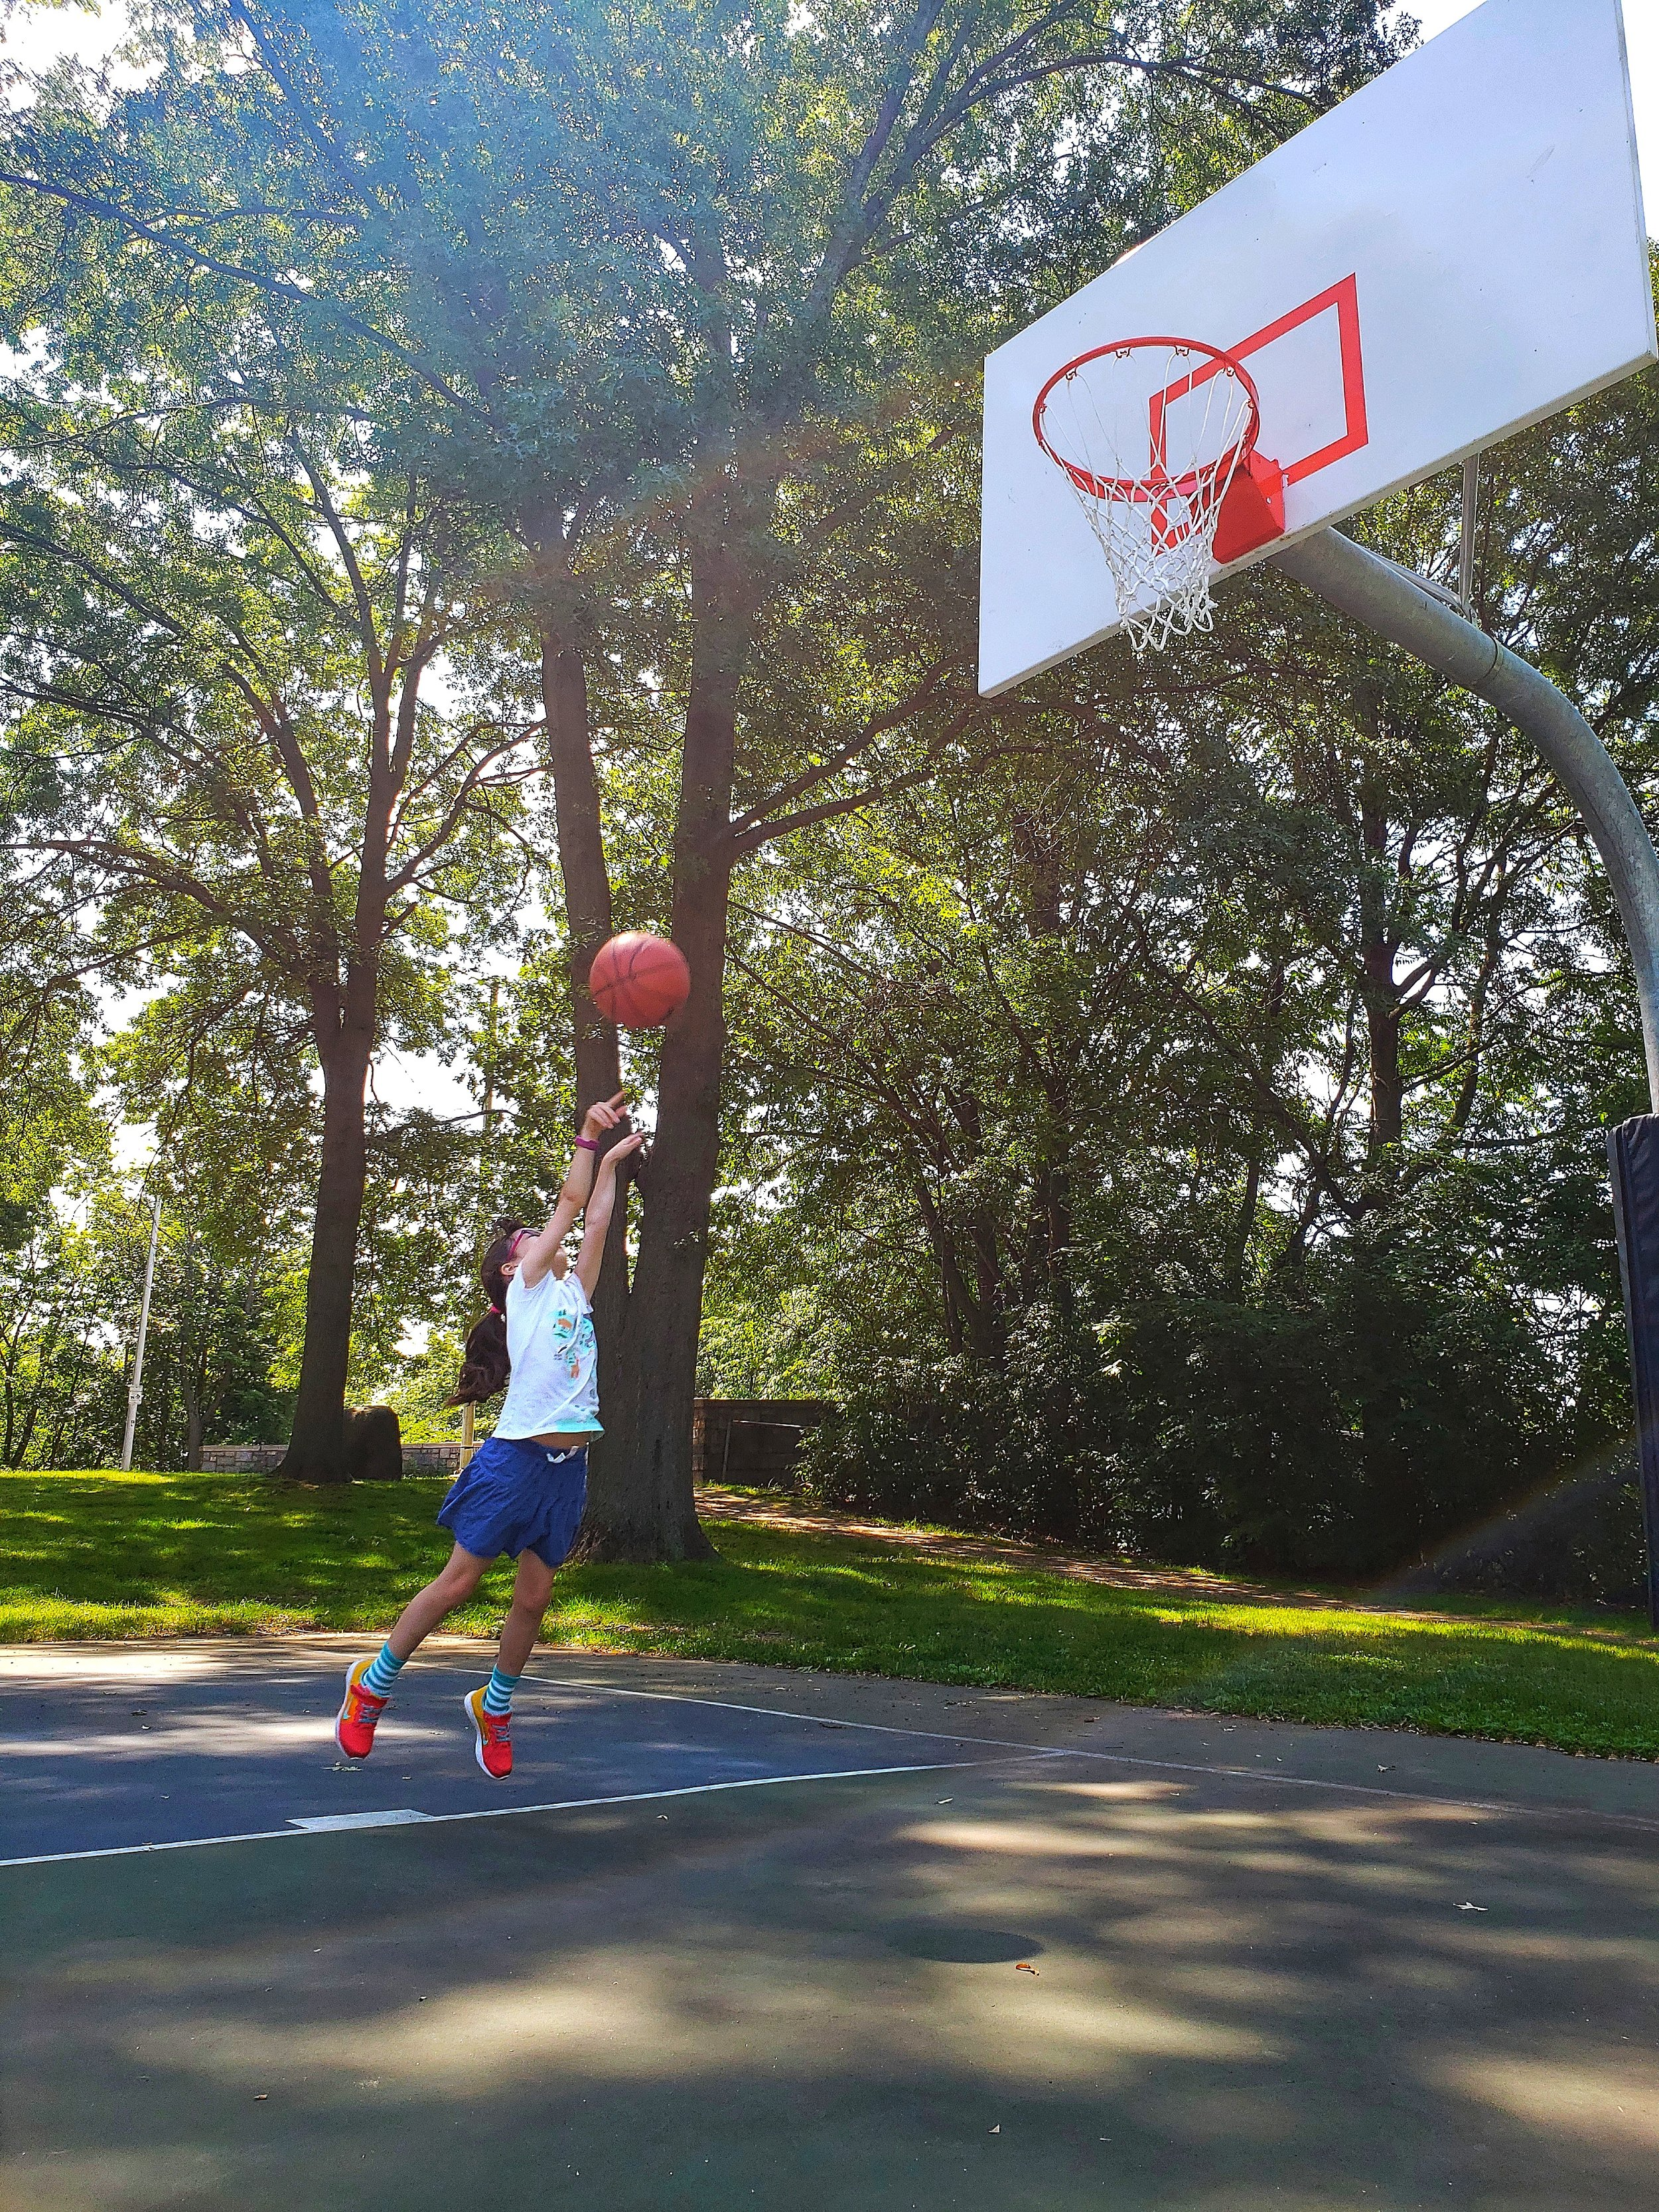 Violet discovered her love of basketball this summer…and even got me to shoot a few hoops